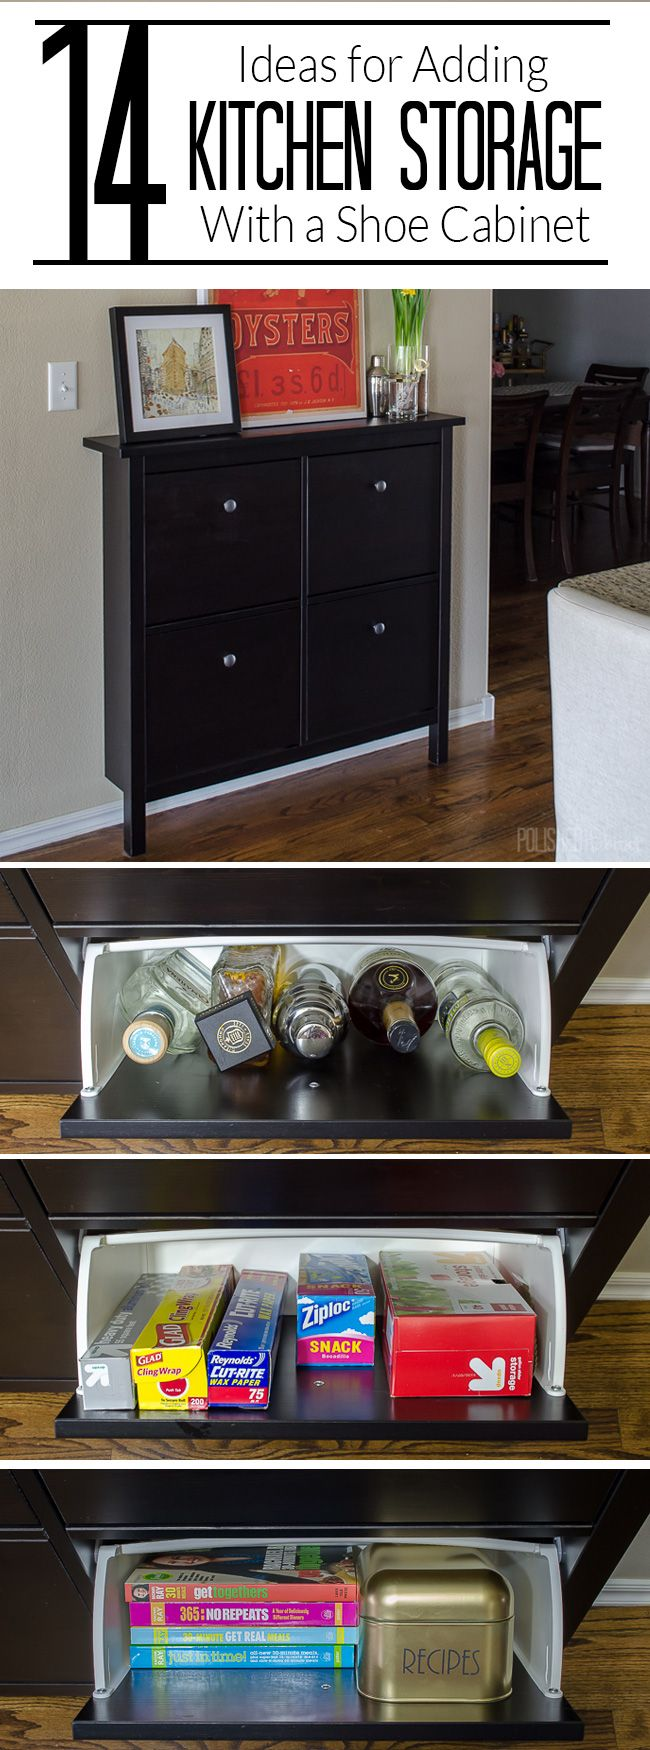 kitchen storage hacks 14 ways to use an ikea shoe cabinet for kitchen 3149